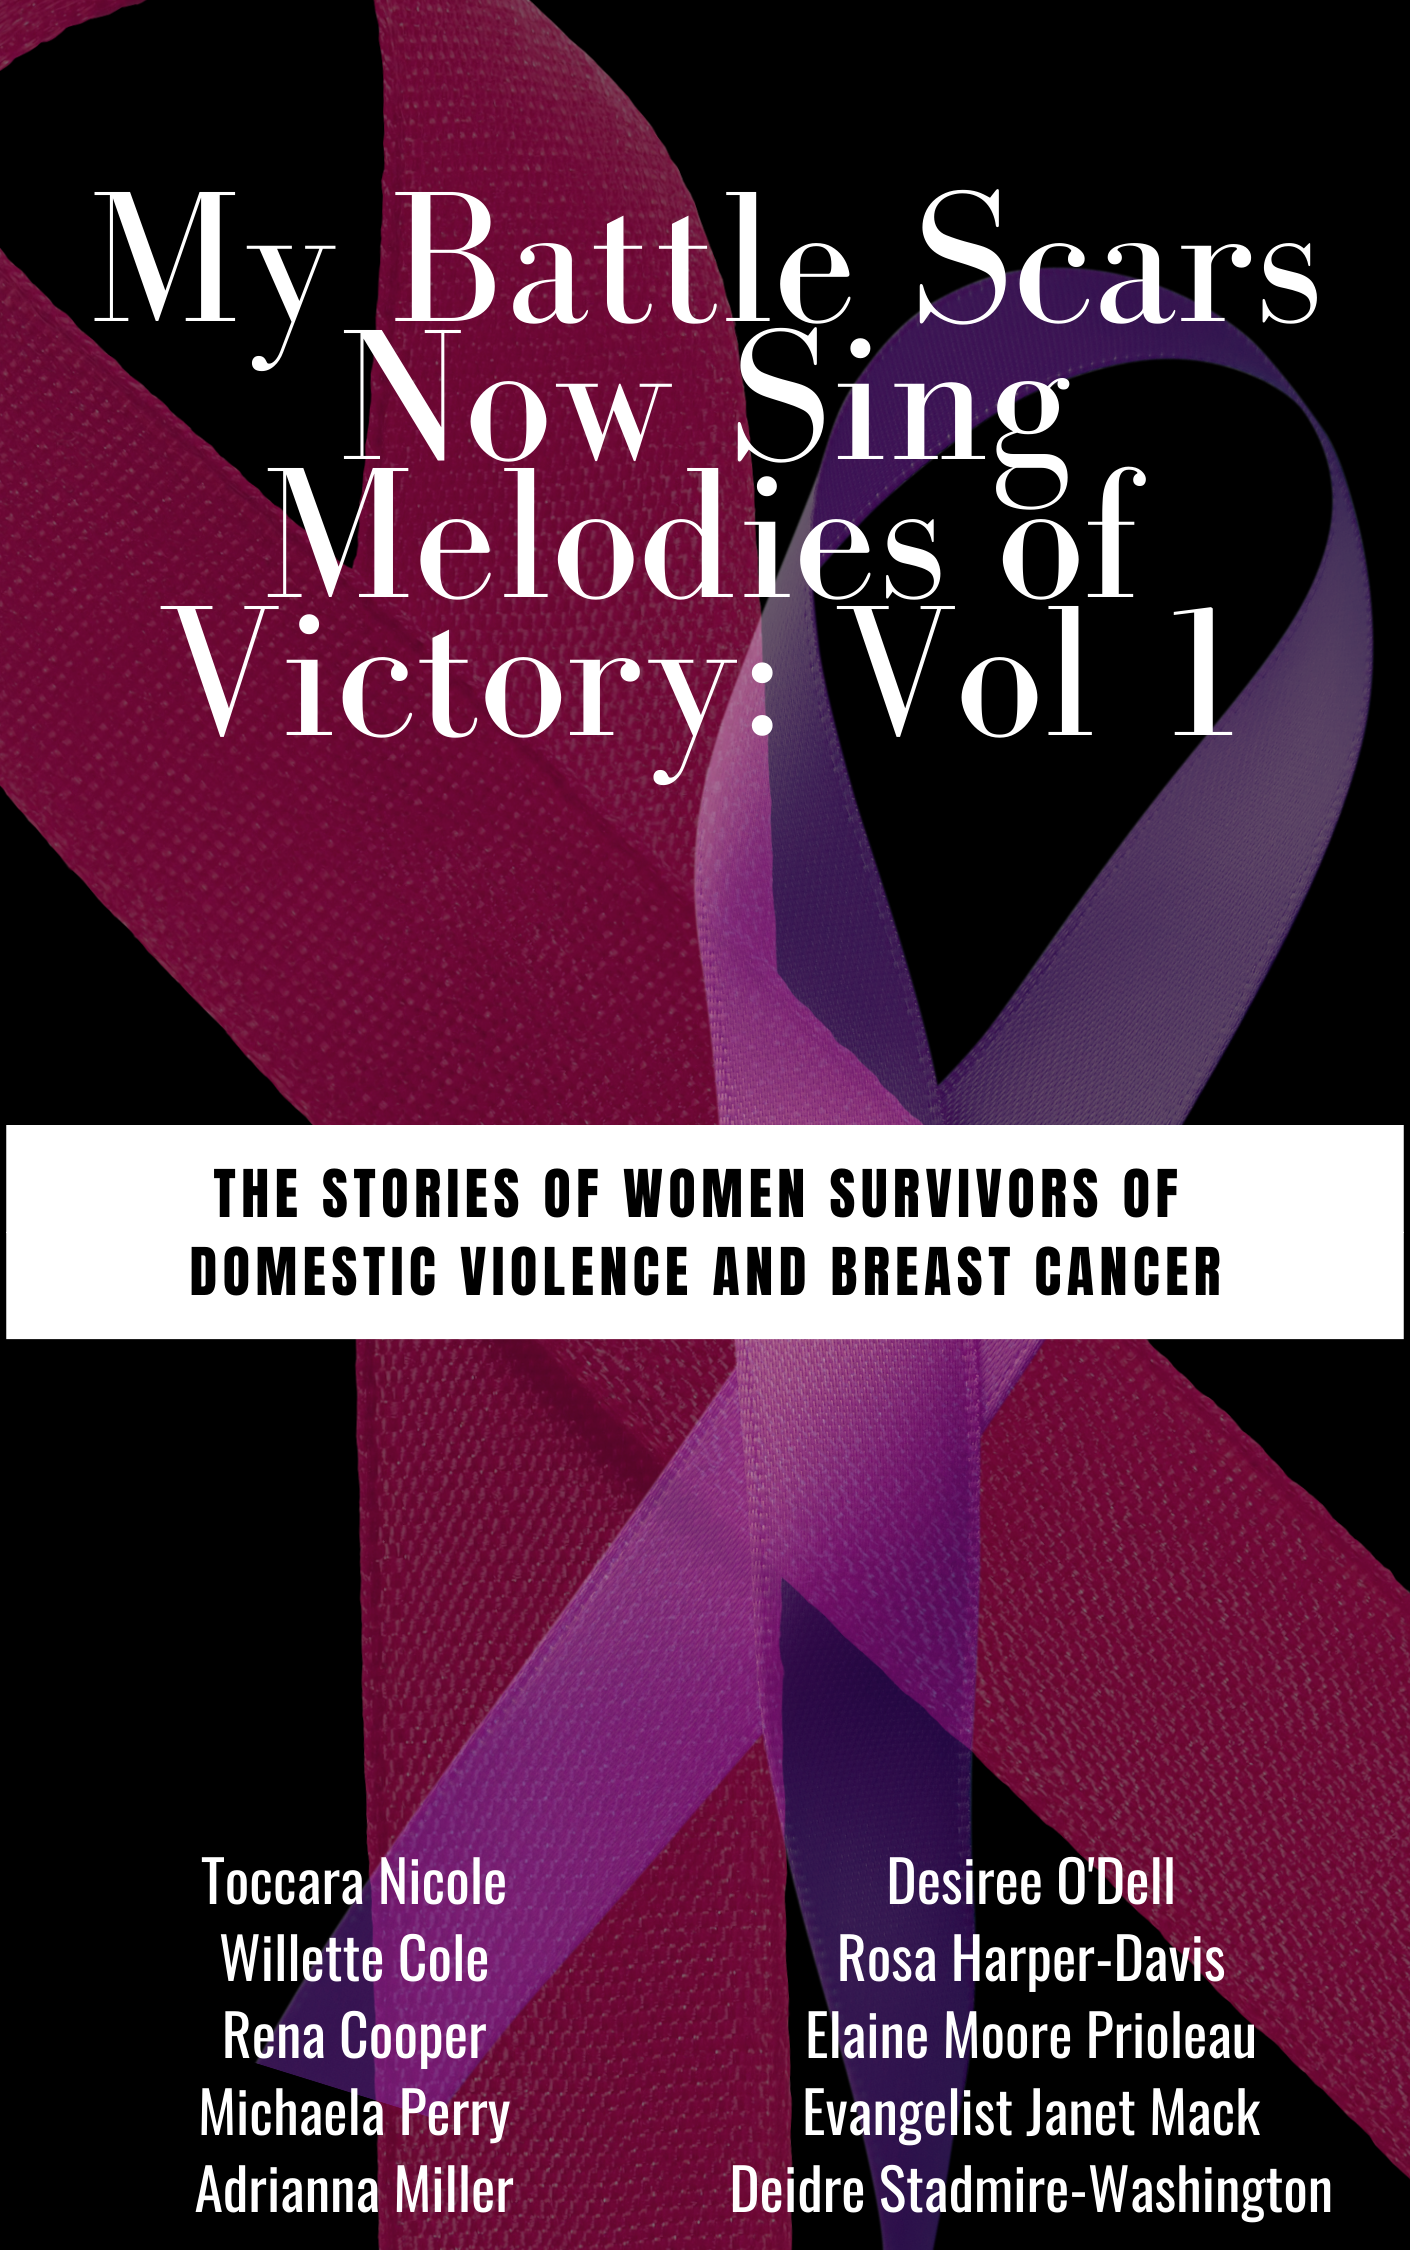 My Battle Scars Now Sing Melodies of Victory: Vol 1